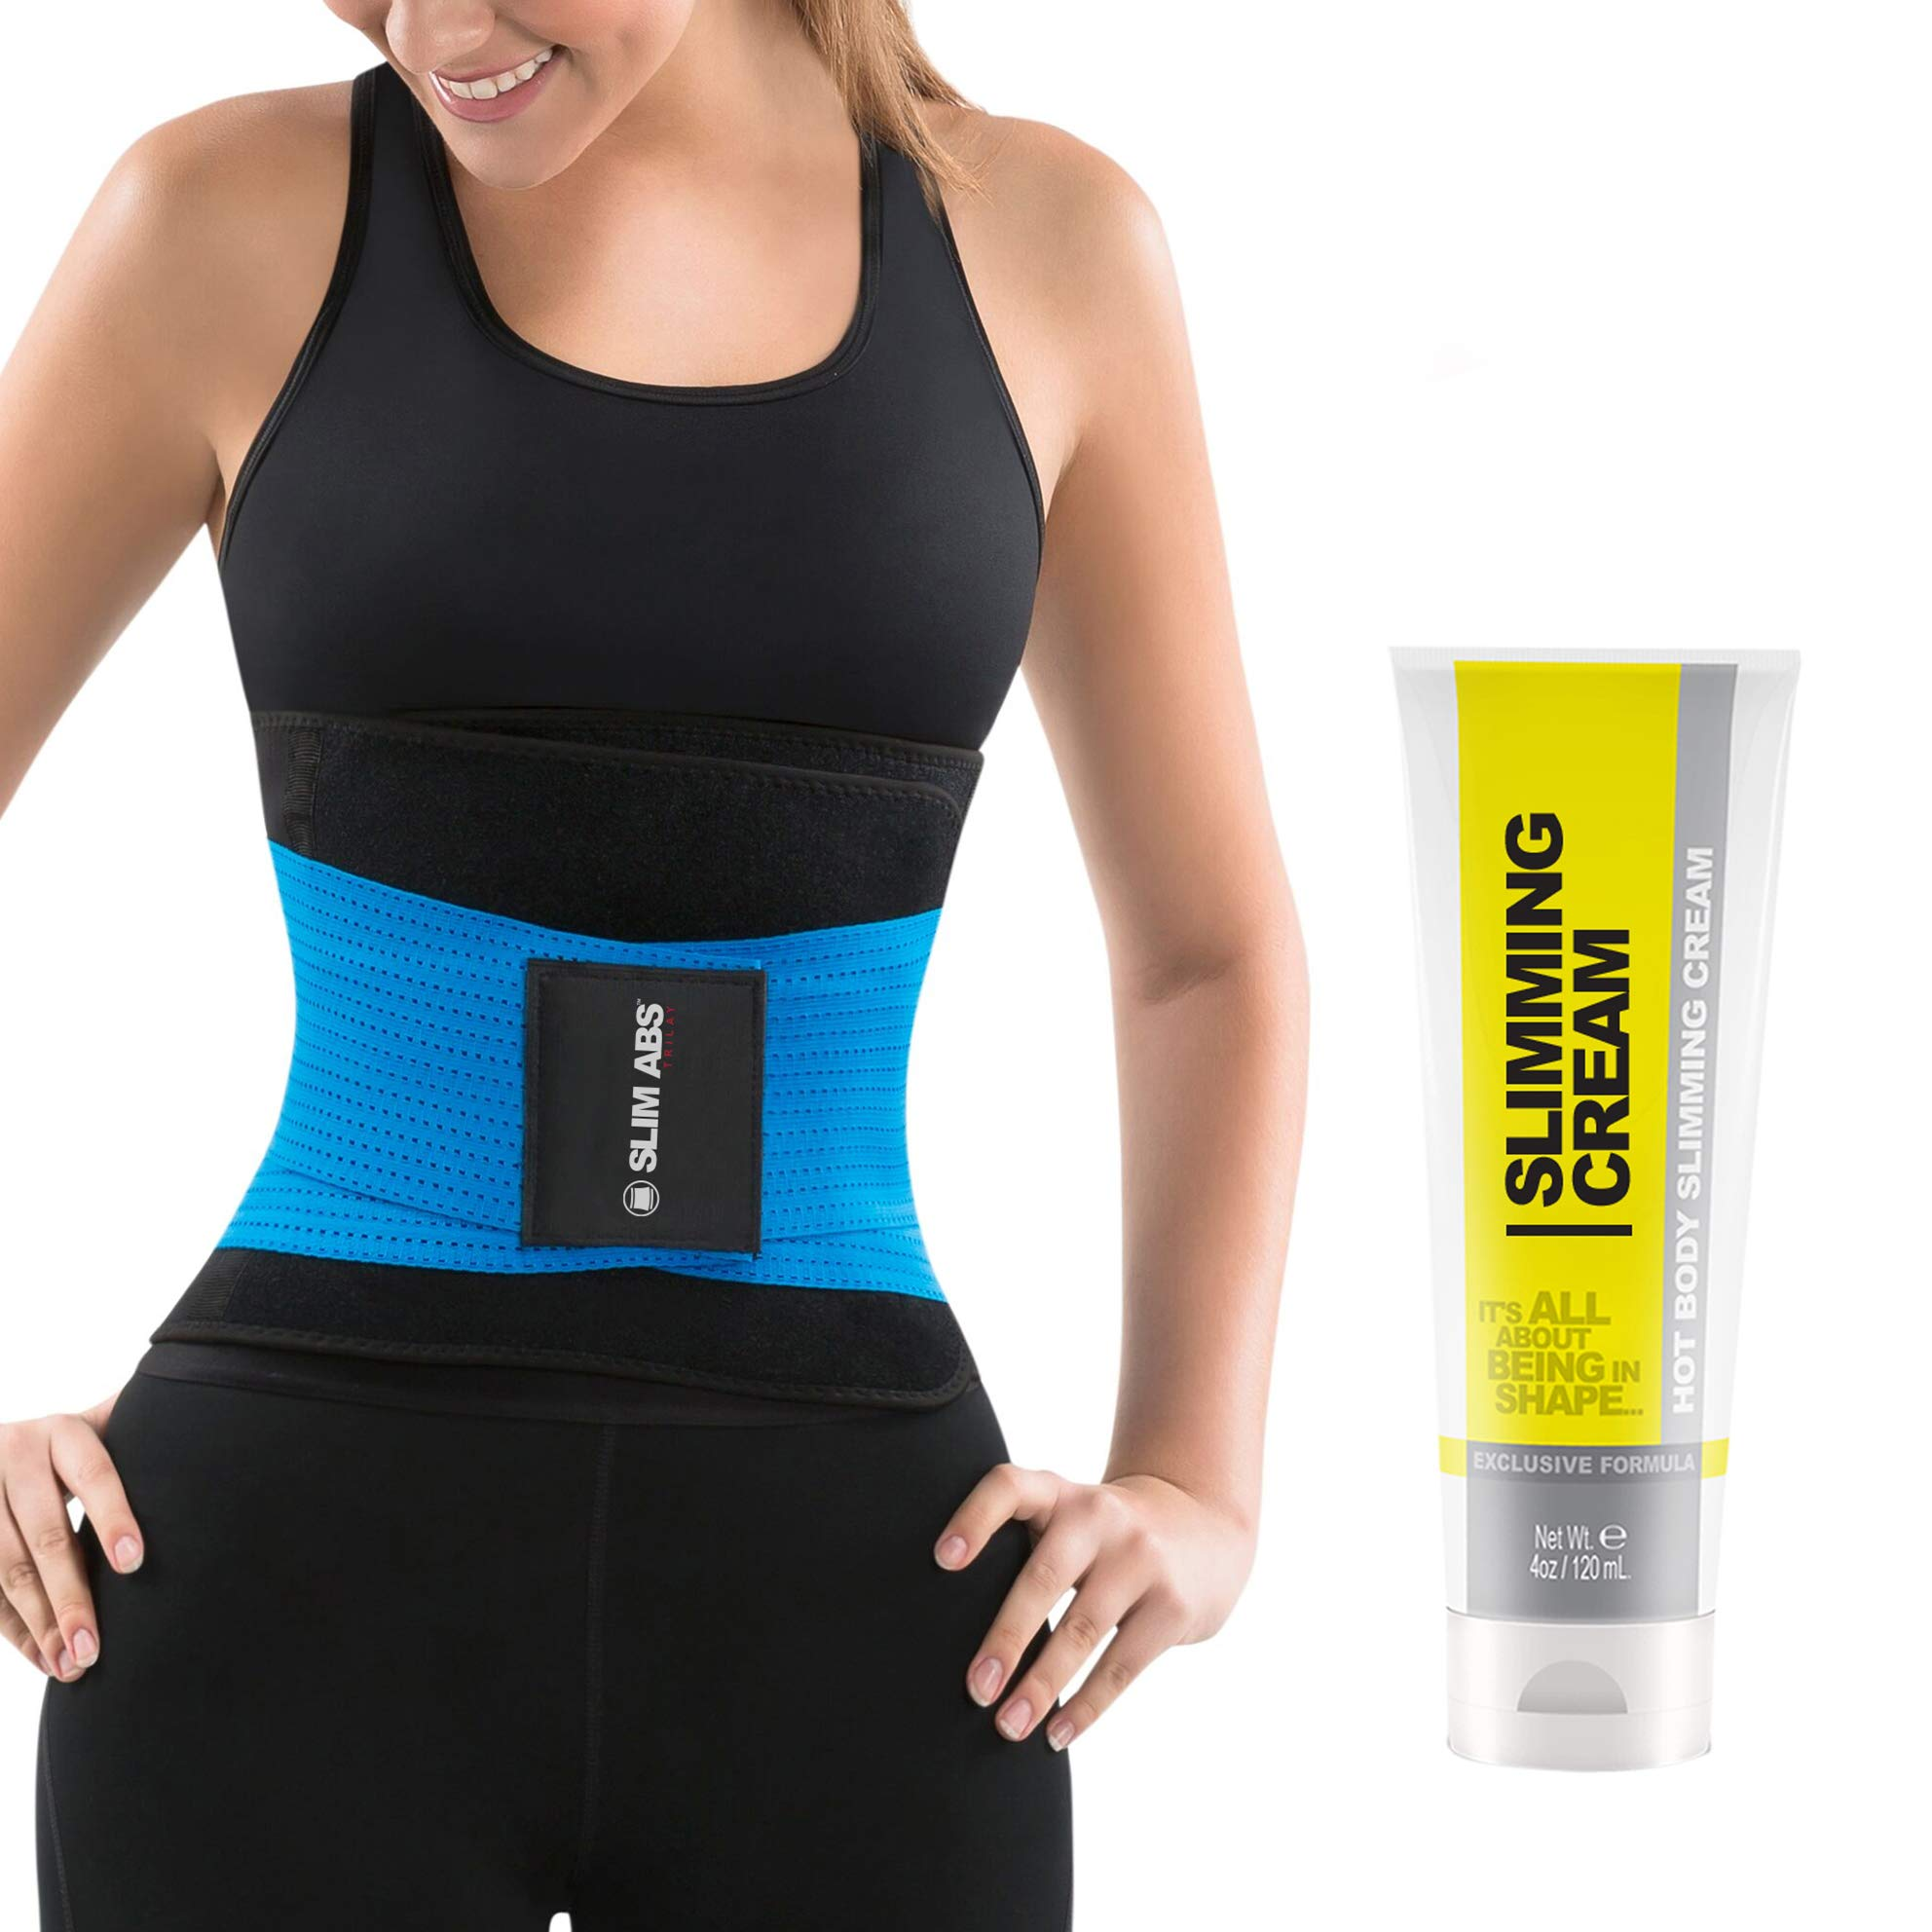 Slim Abs Waist Trainer Sweat Belt with Slimming Cream - Waist Trimmer for Women and Thermogenic Workout Gel (Blue, S/M)